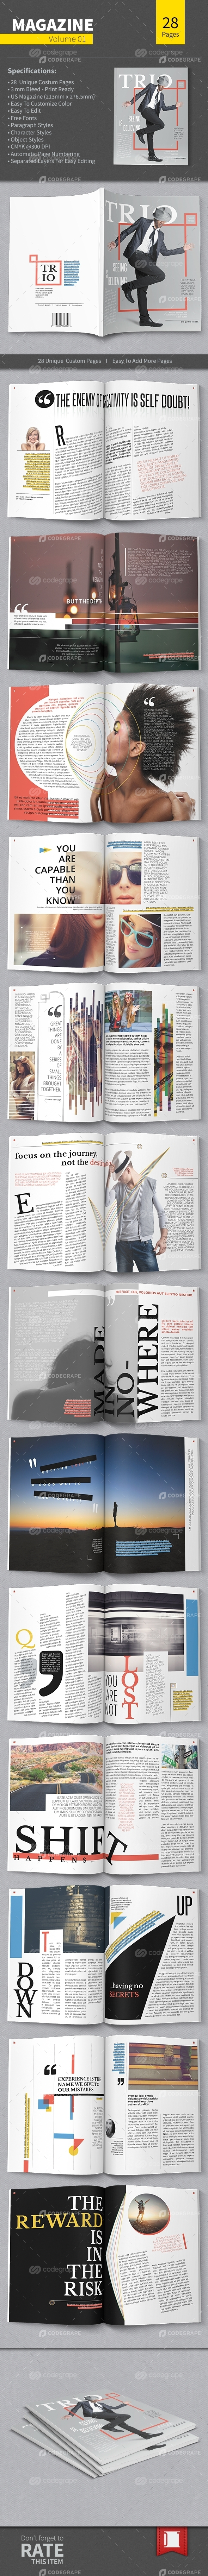 Magazine Template - Volume 01